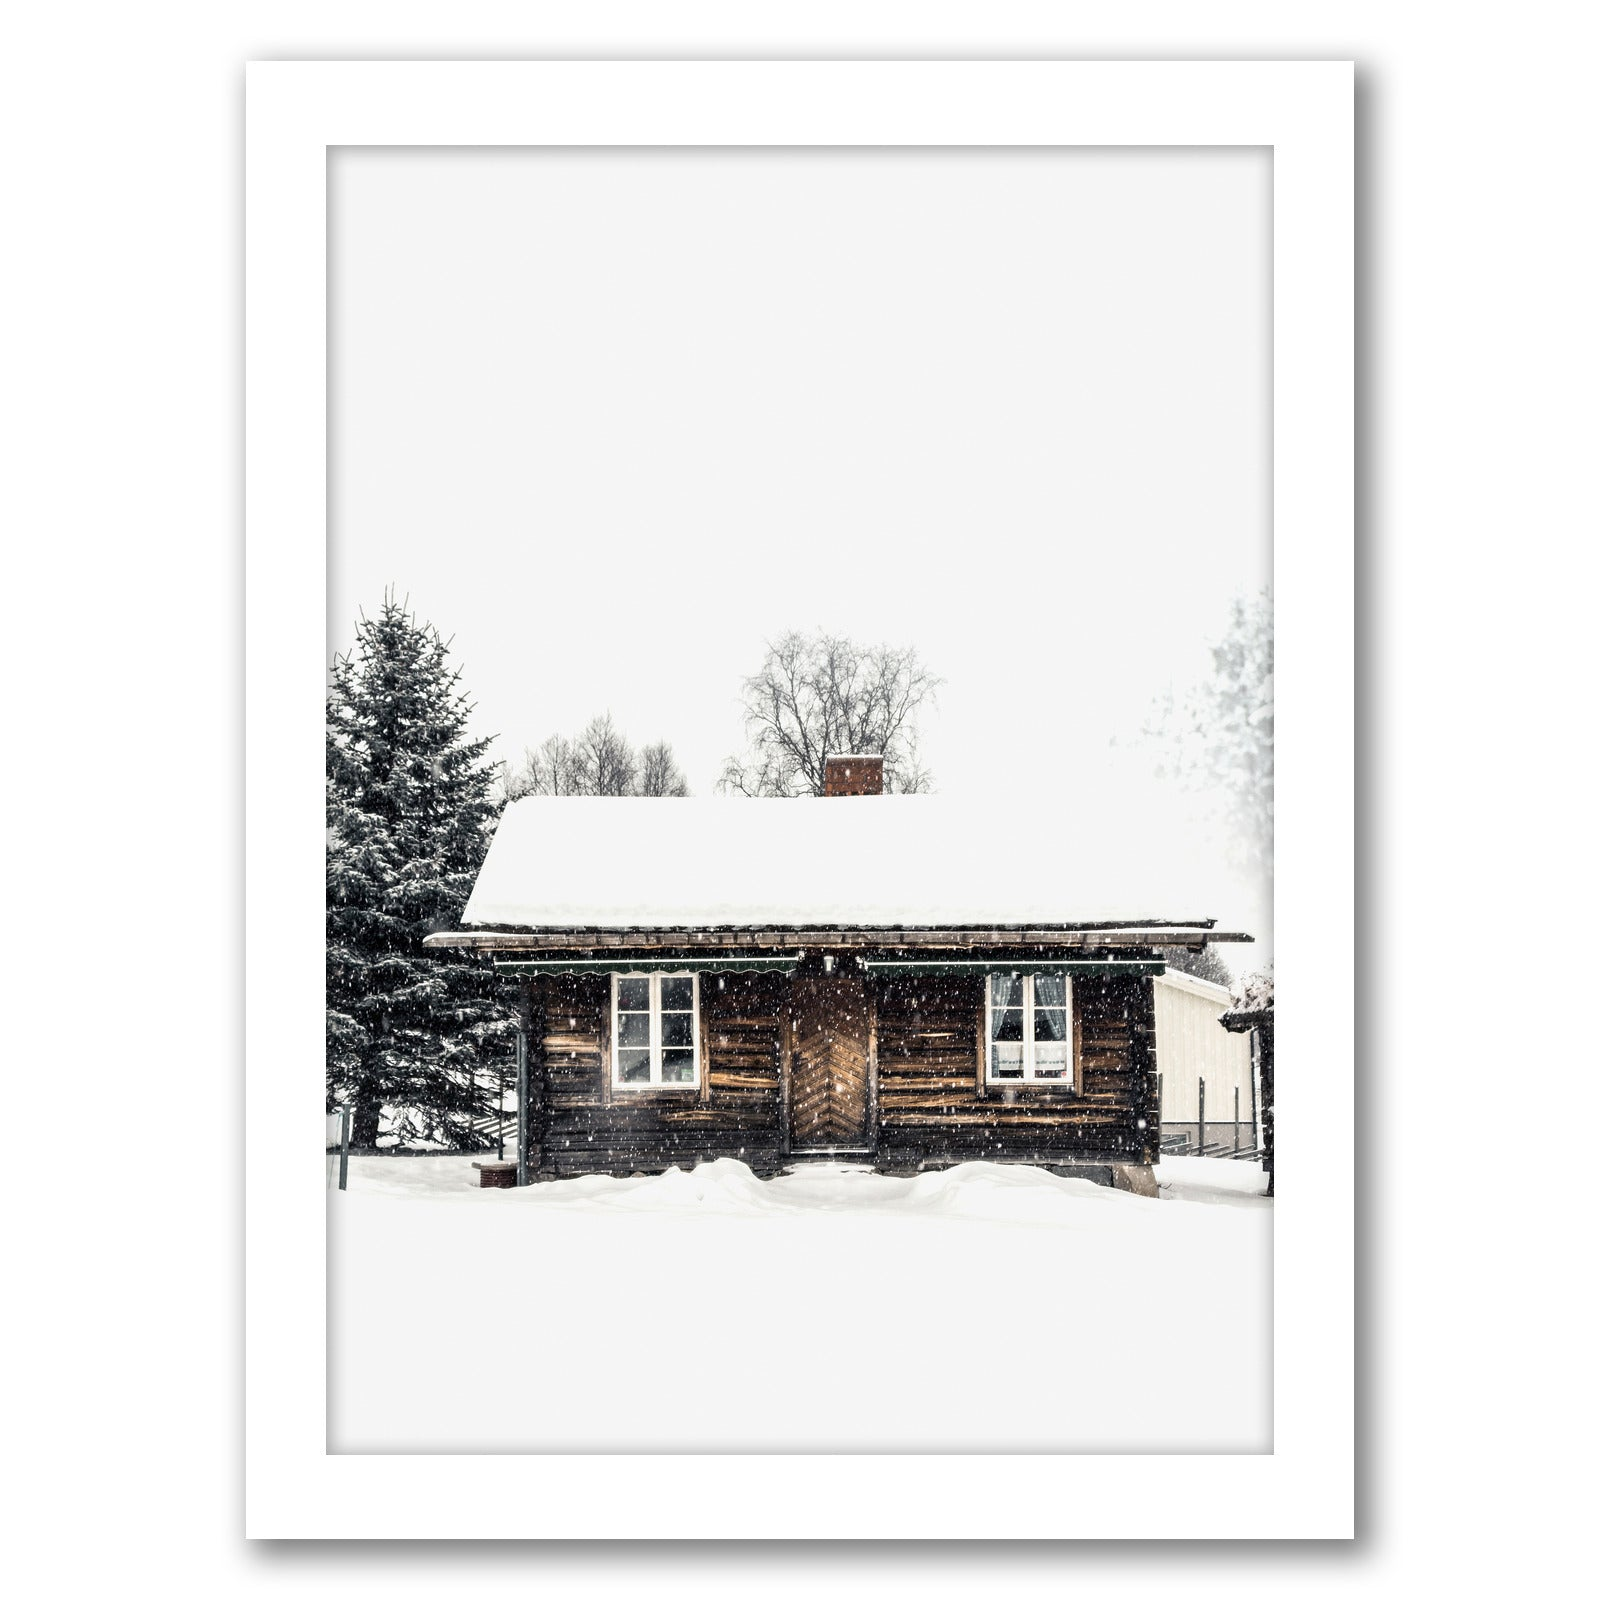 Winter Decor by Tanya Shumkina - White Framed Print - Wall Art - Americanflat